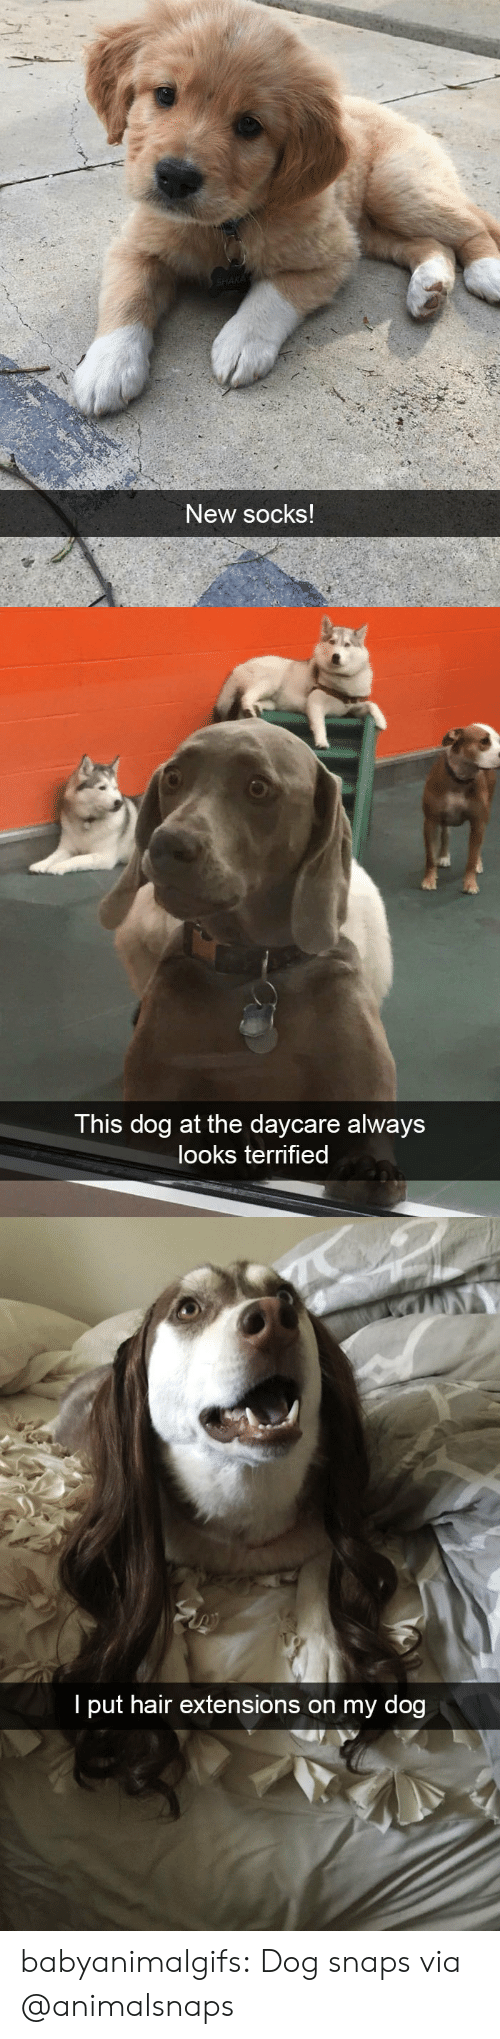 Tumblr, Blog, and Hair: New socks   This dog at the daycare always  looks terrified   I put hair extensions on my dog babyanimalgifs: Dog snaps via @animalsnaps